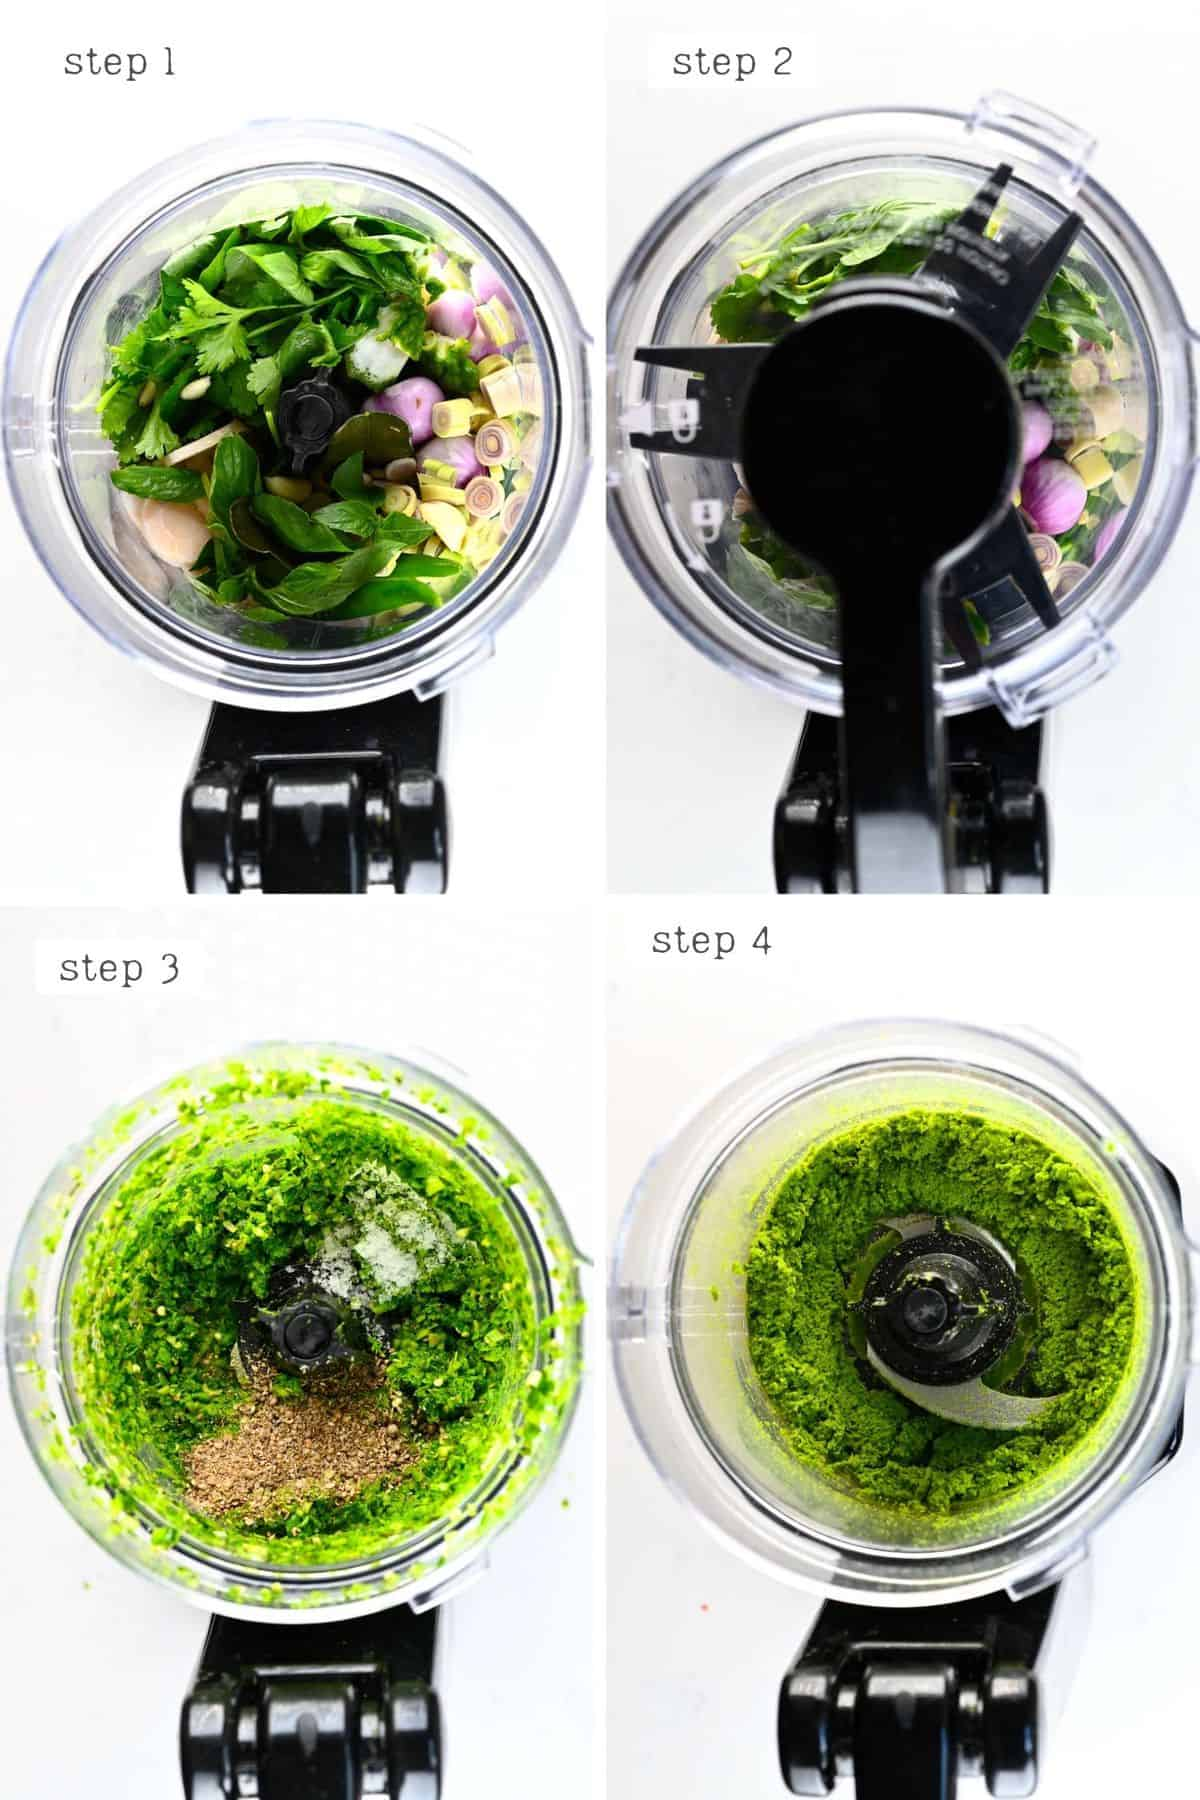 Steps for making Thai Green Curry Paste